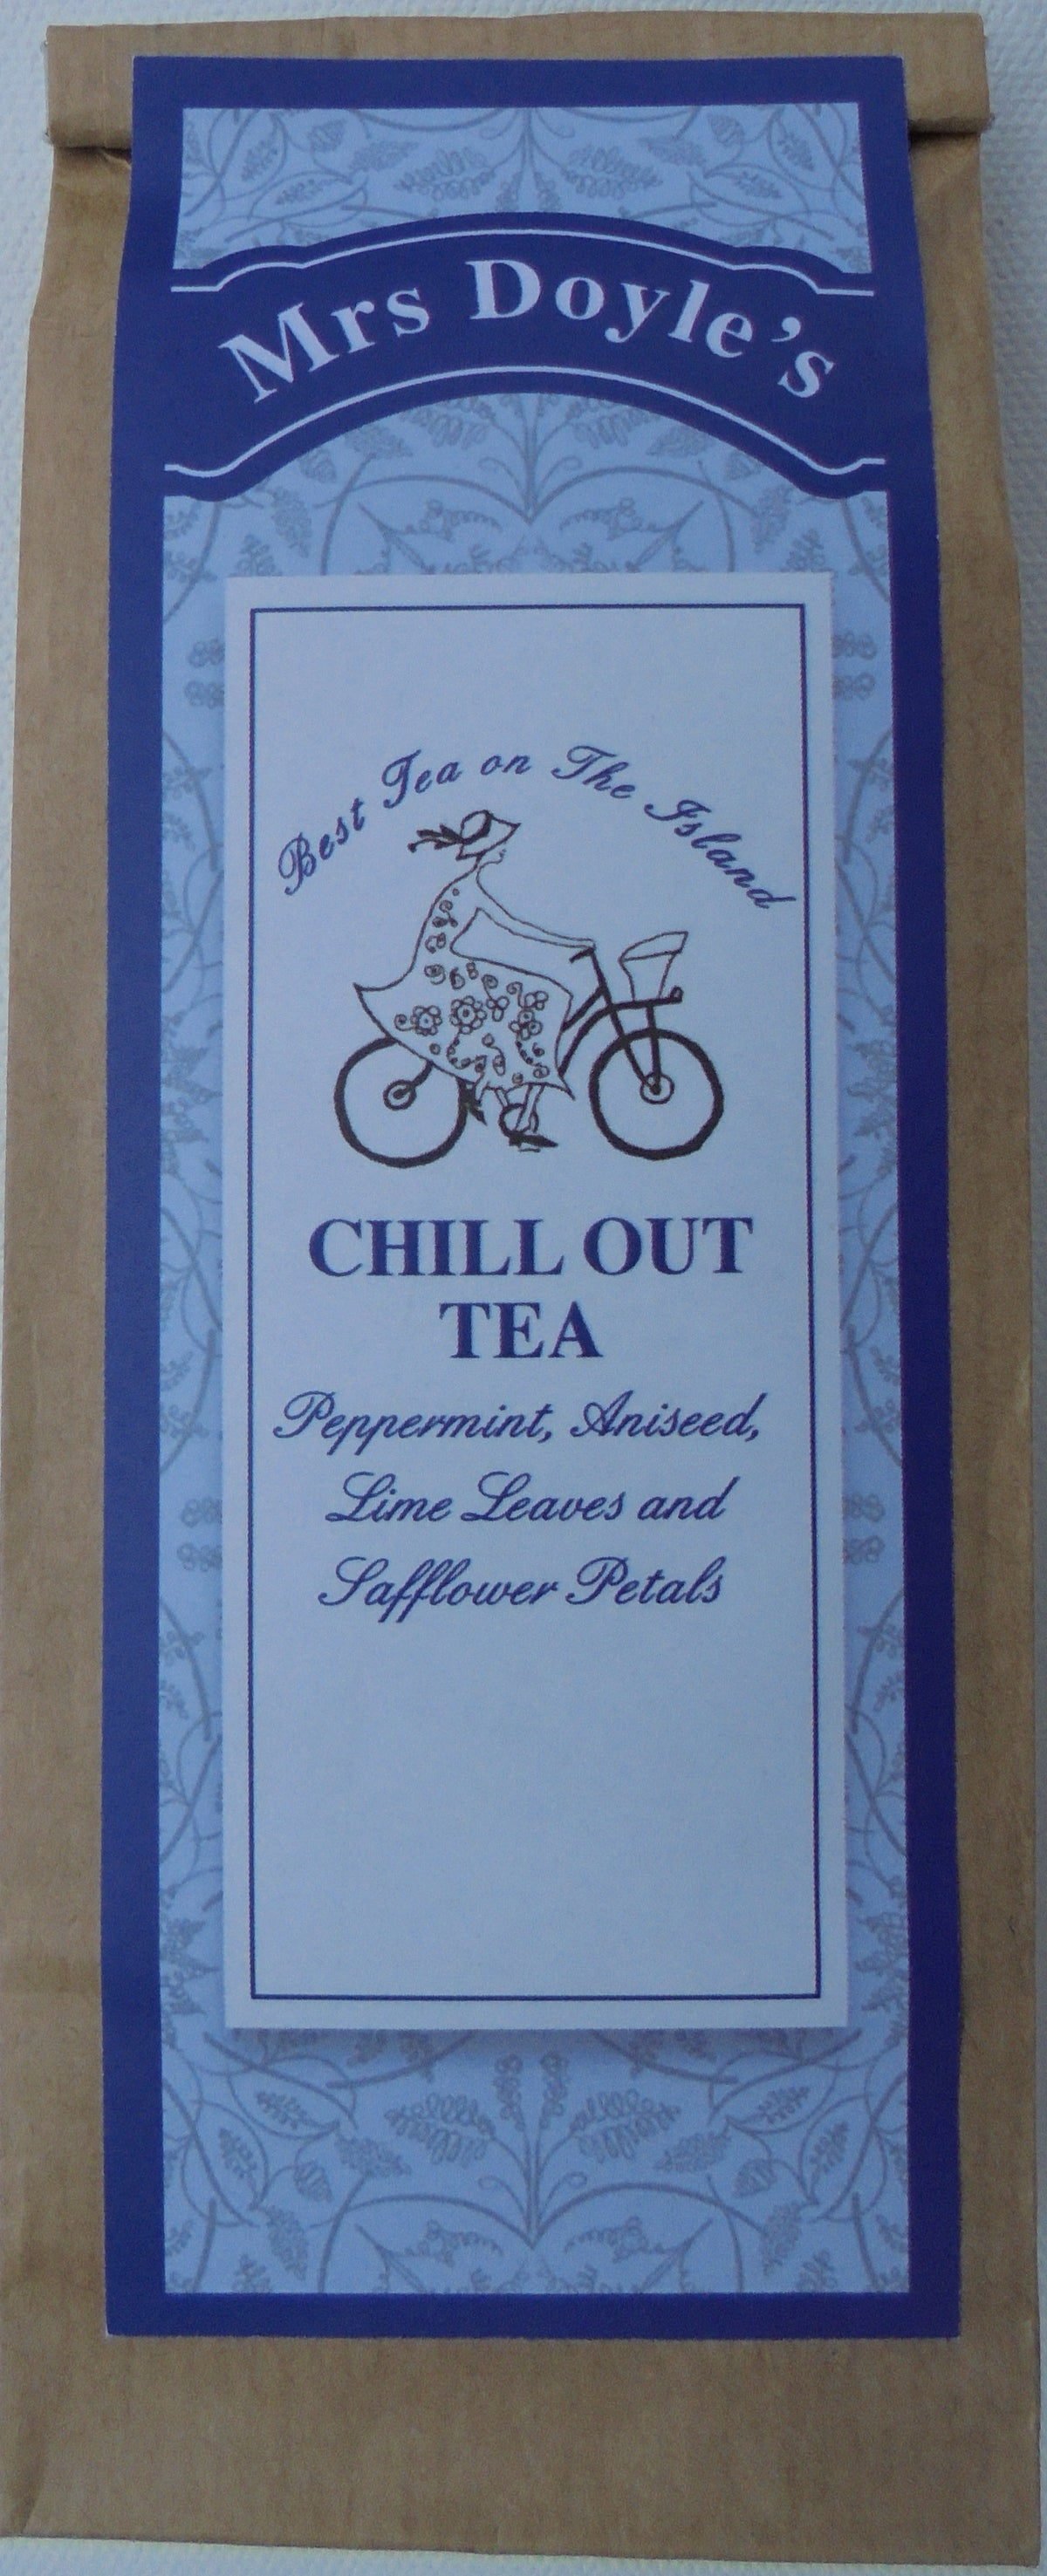 Mrs Doyle's chill out loose leaf tea